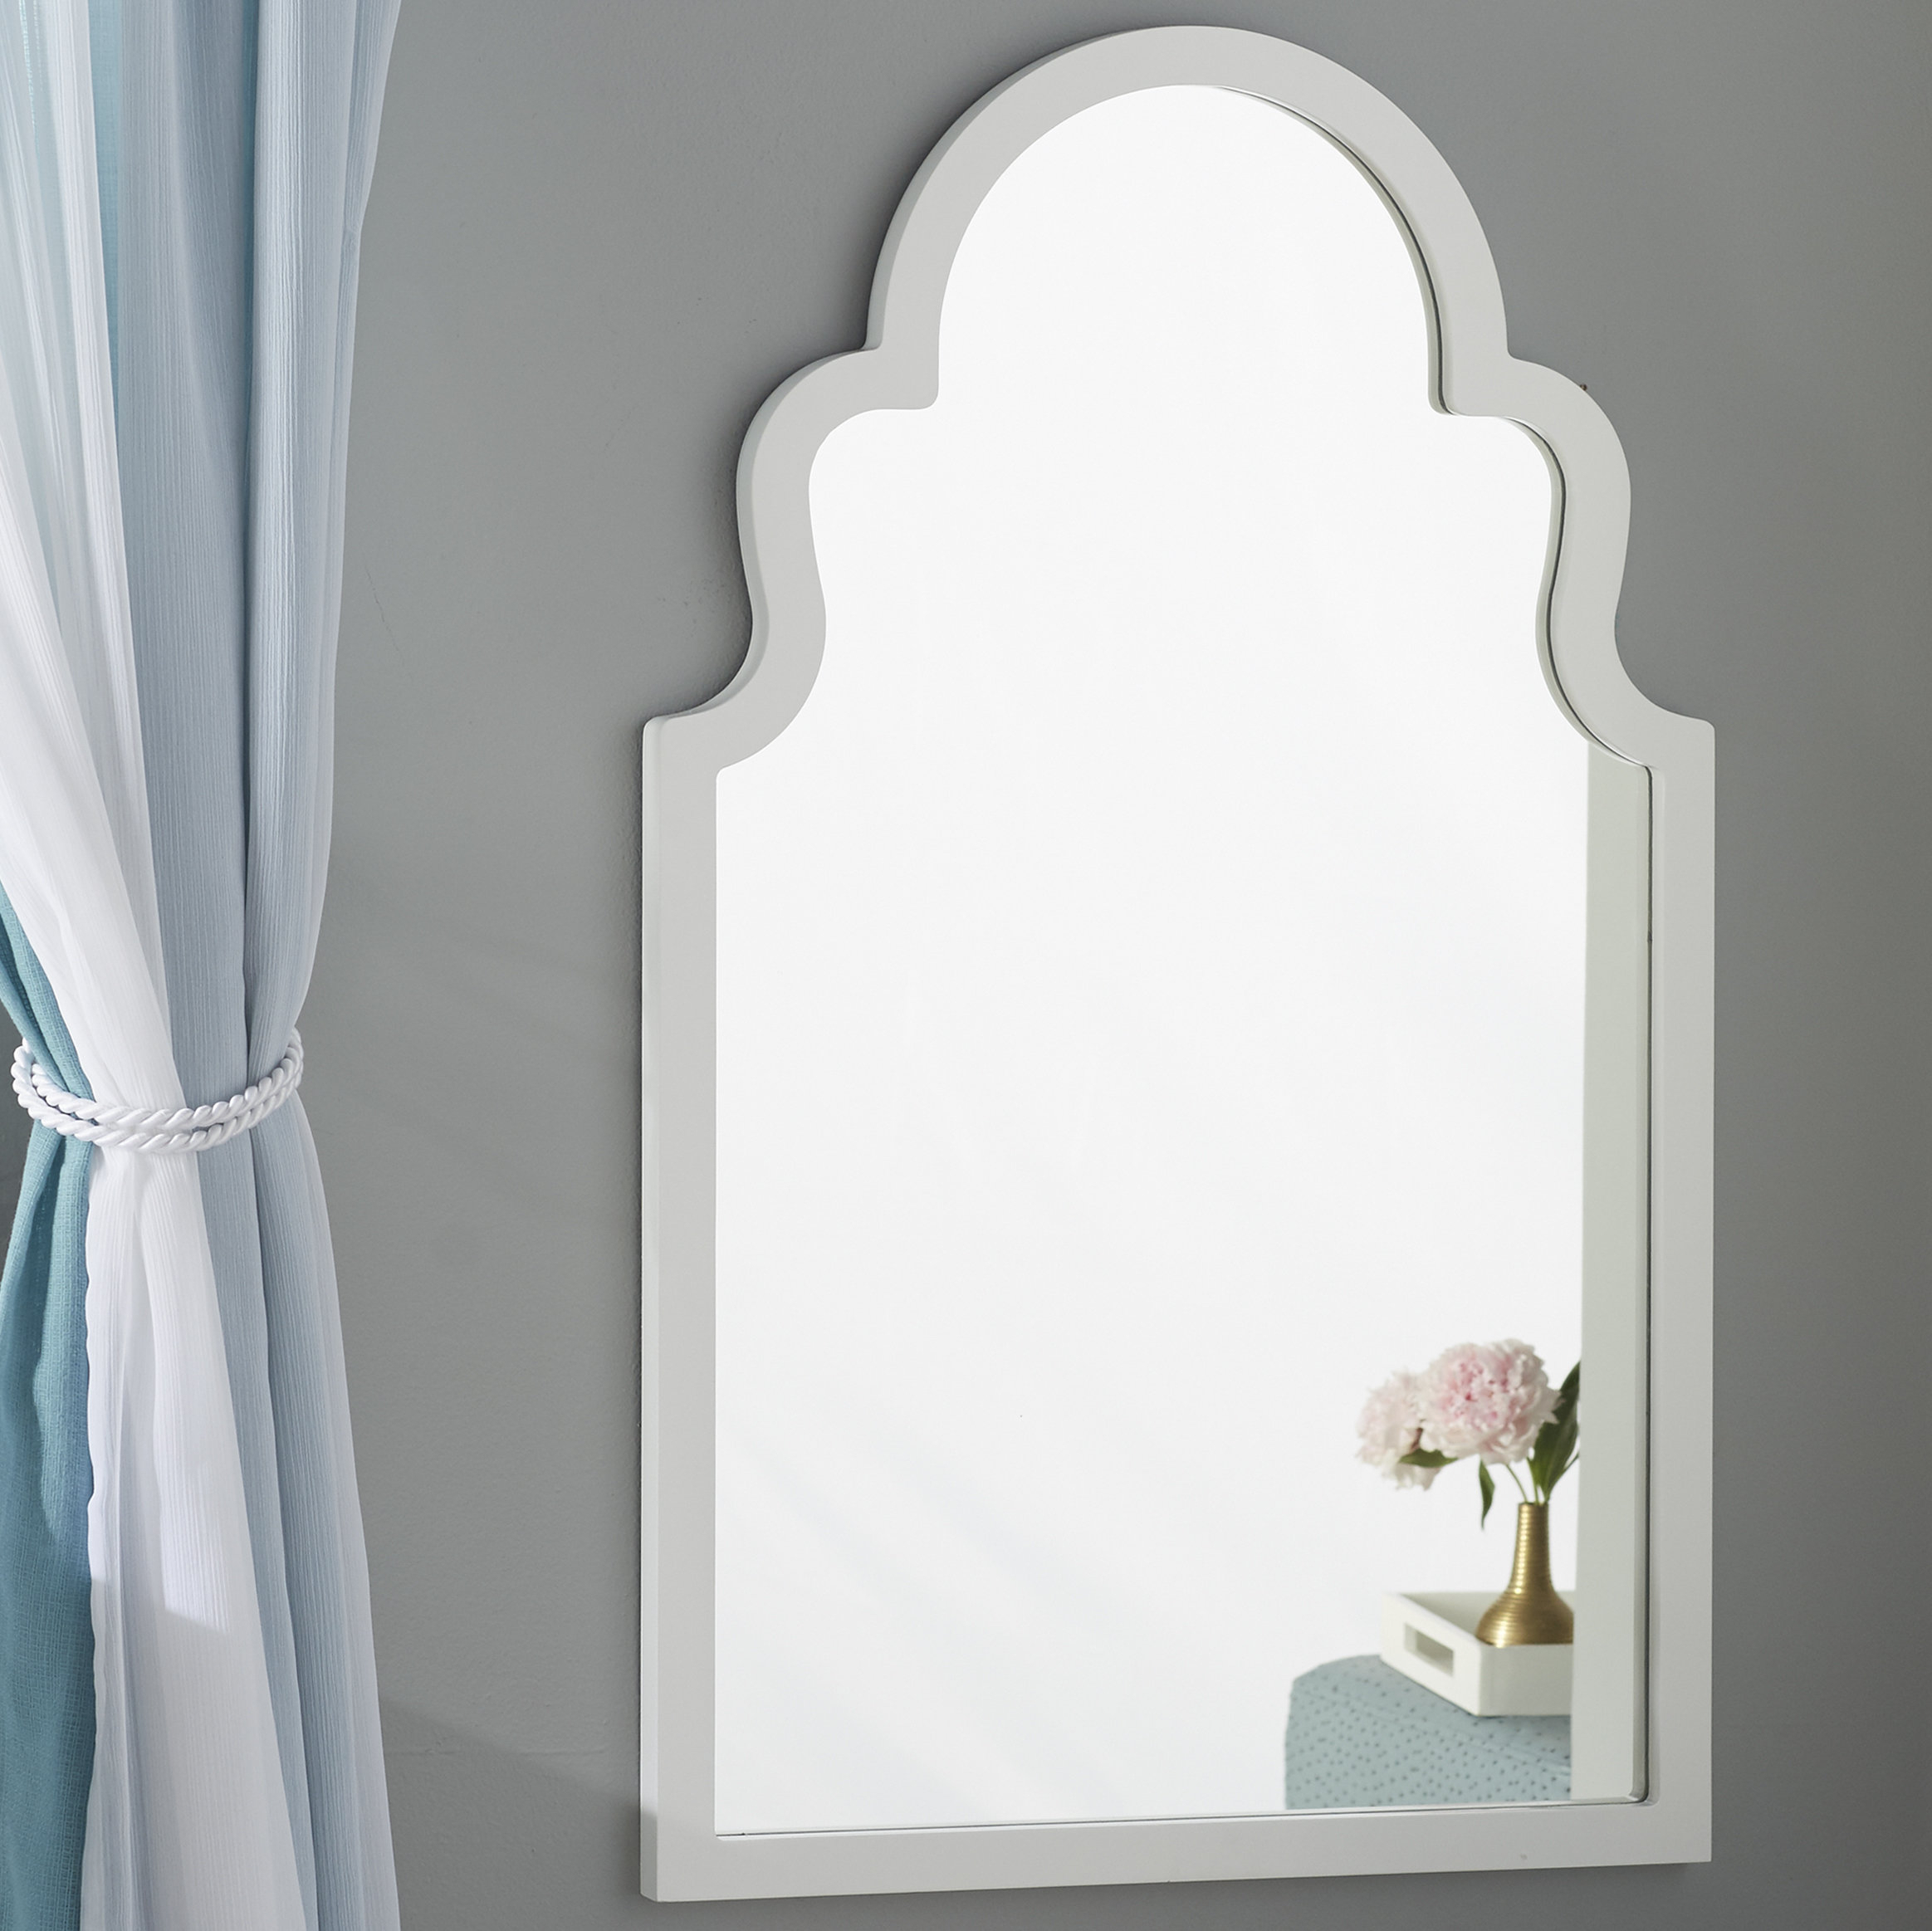 Arch Vertical Wall Mirror With Fifi Contemporary Arch Wall Mirrors (View 16 of 20)